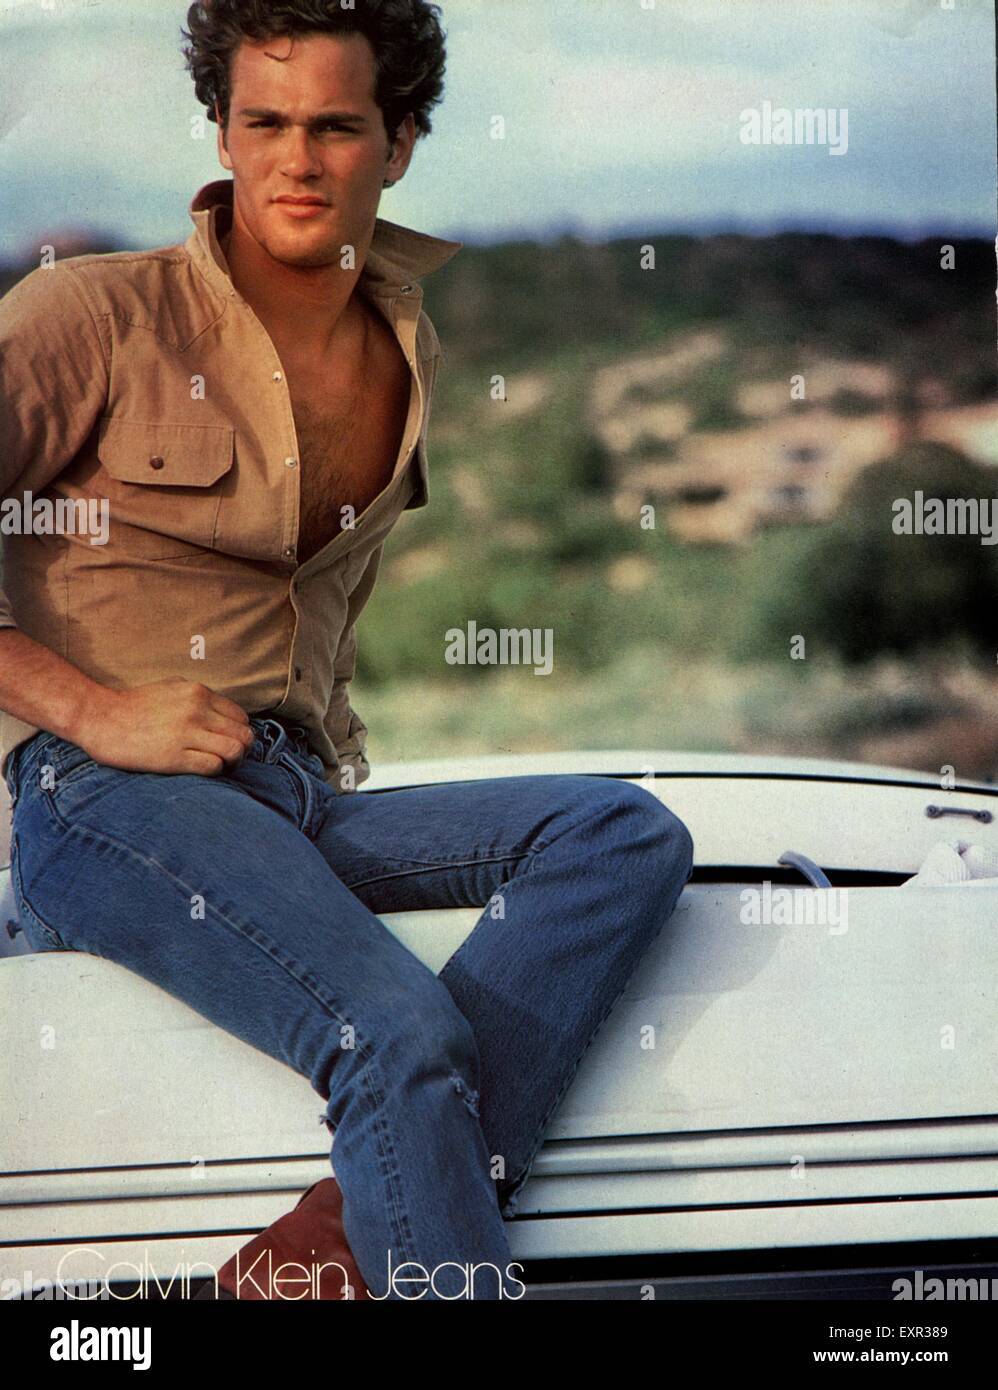 Calvin Klein Jeans Advert High Resolution Stock Photography And Images Alamy